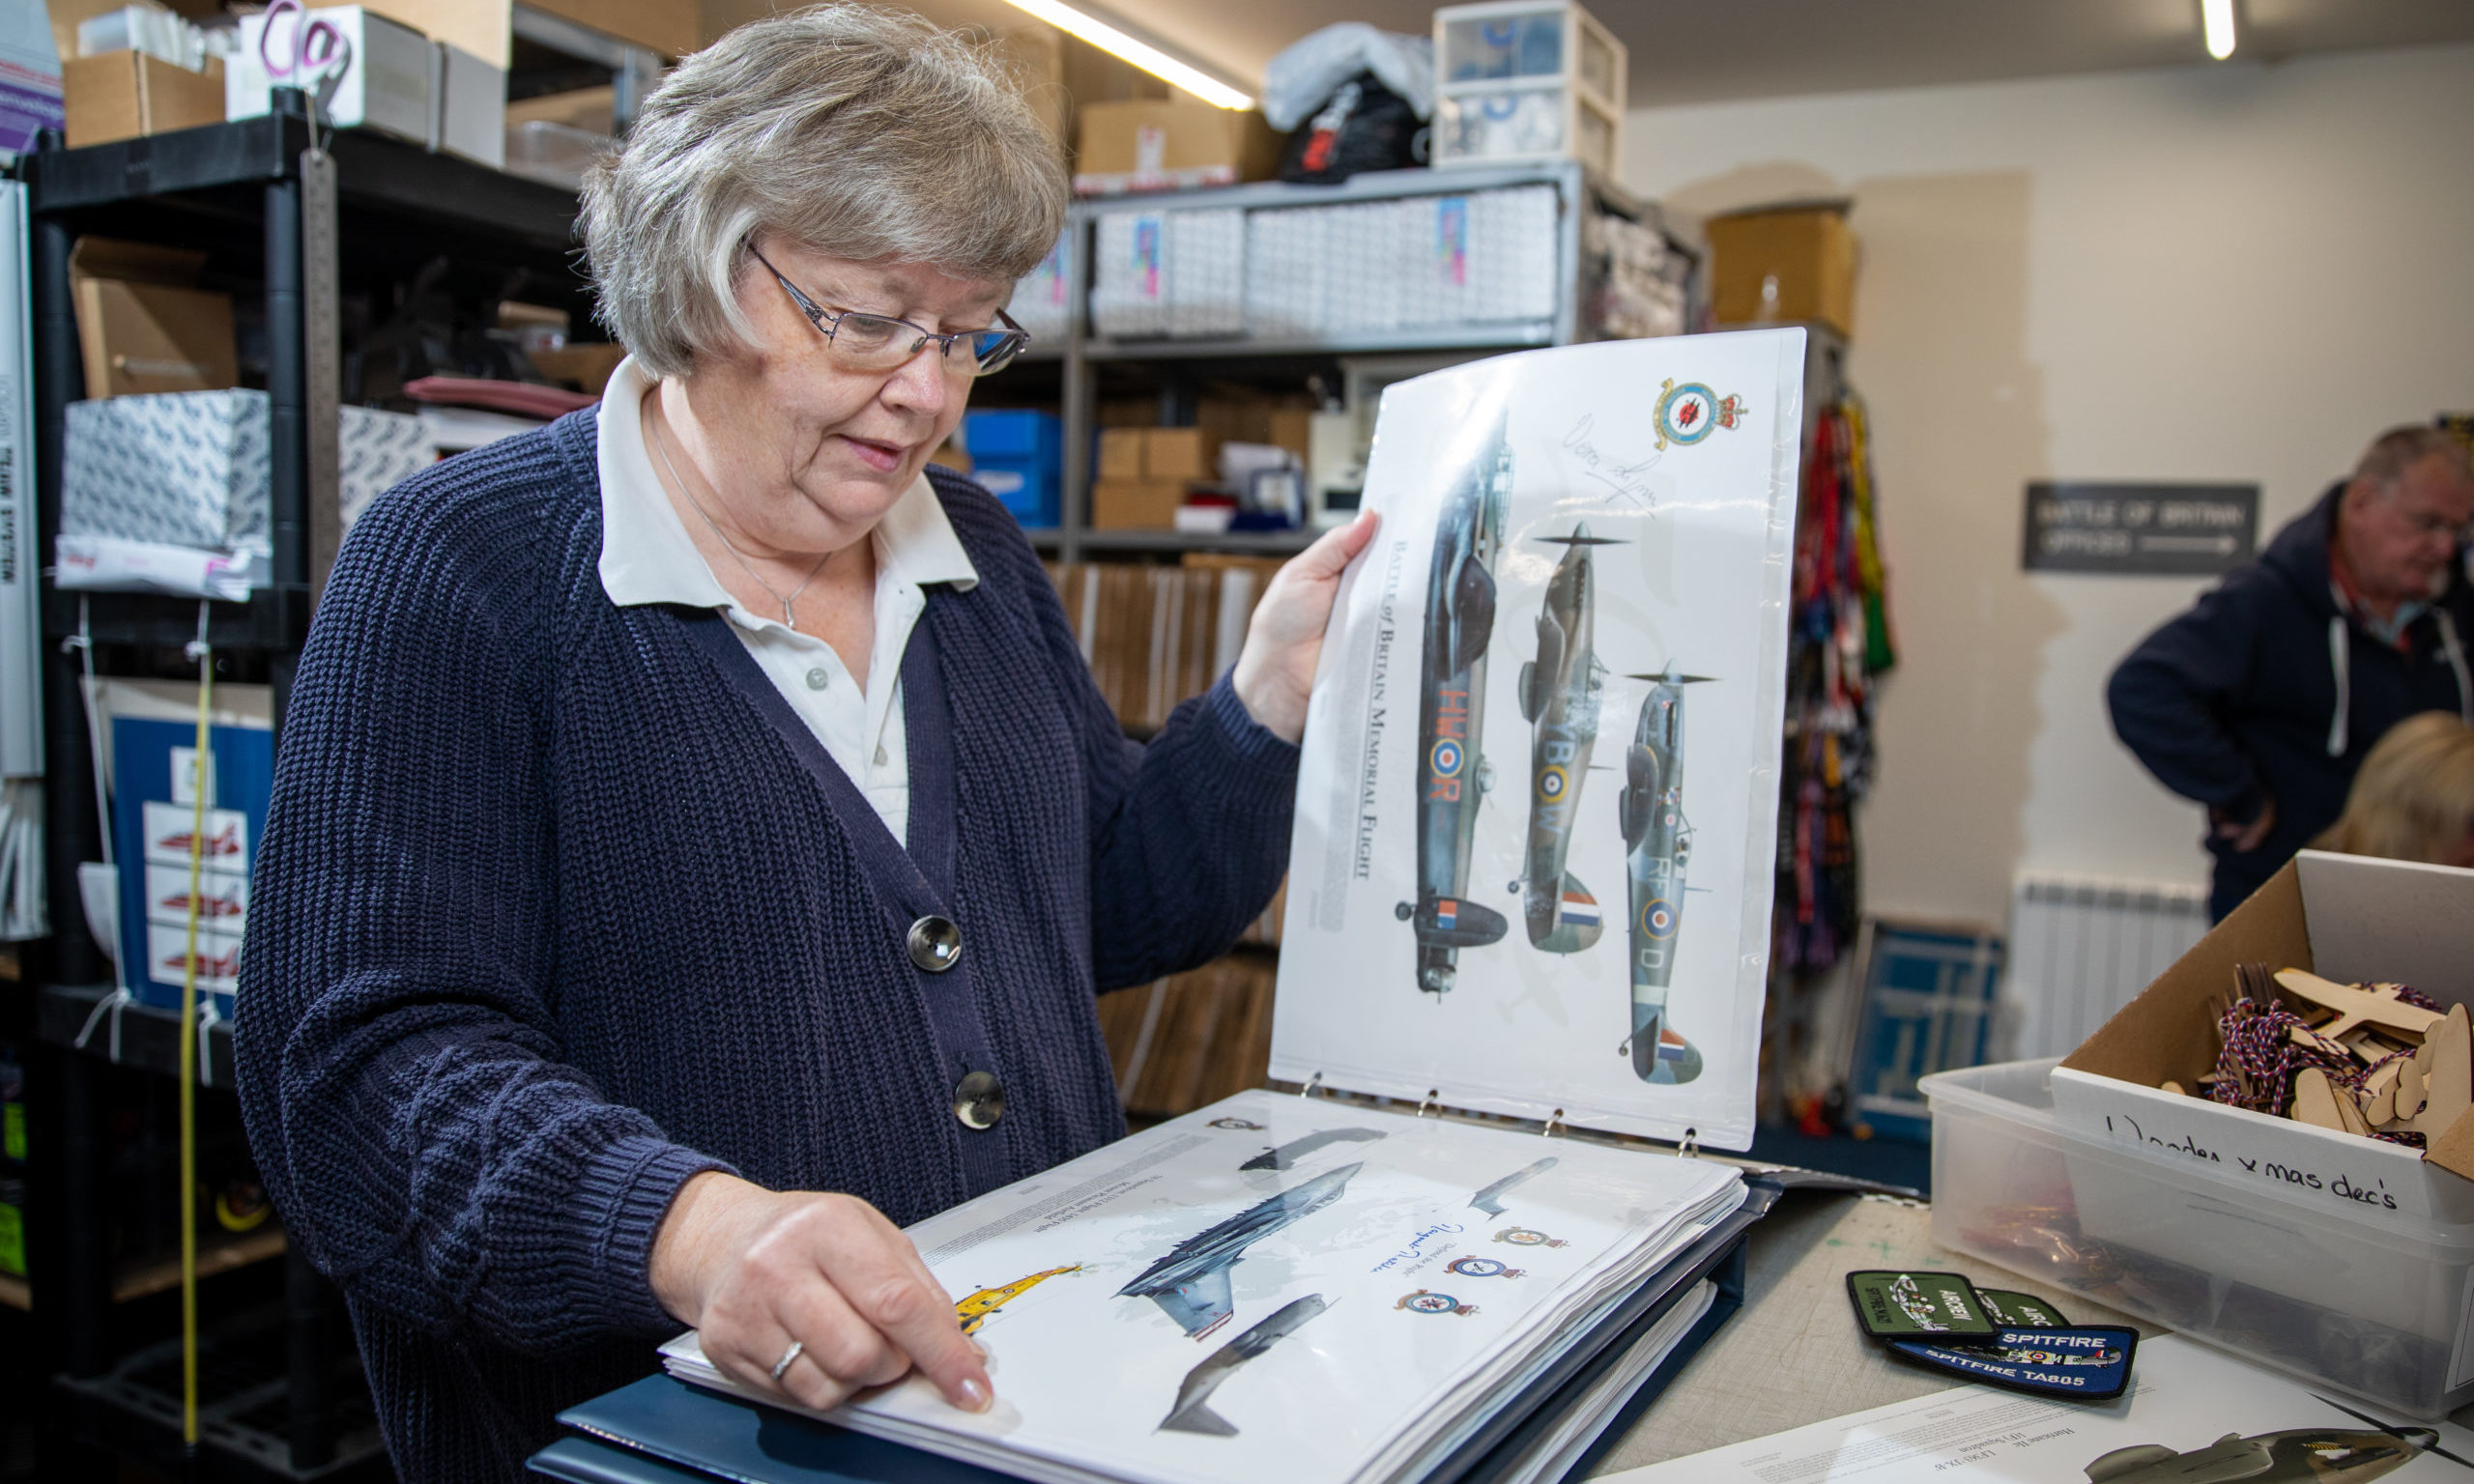 Gill Howie with her master collection of signed prints including one commemorating the Battle of Britain Memorial flight which is signed by Vera Lynn.